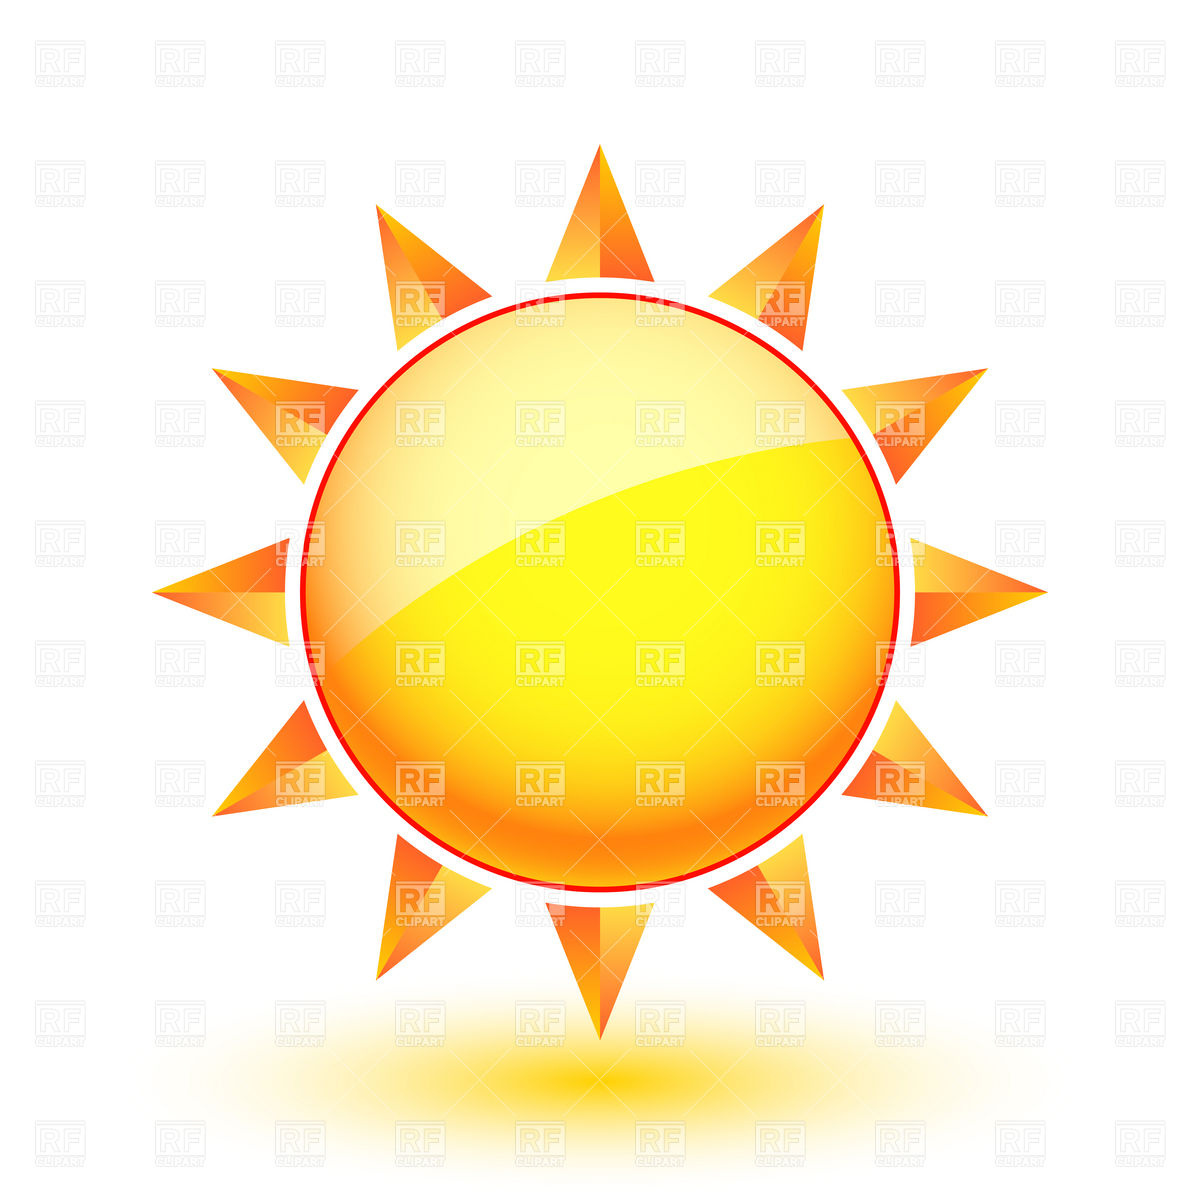 9 Sun Weather Icon Images